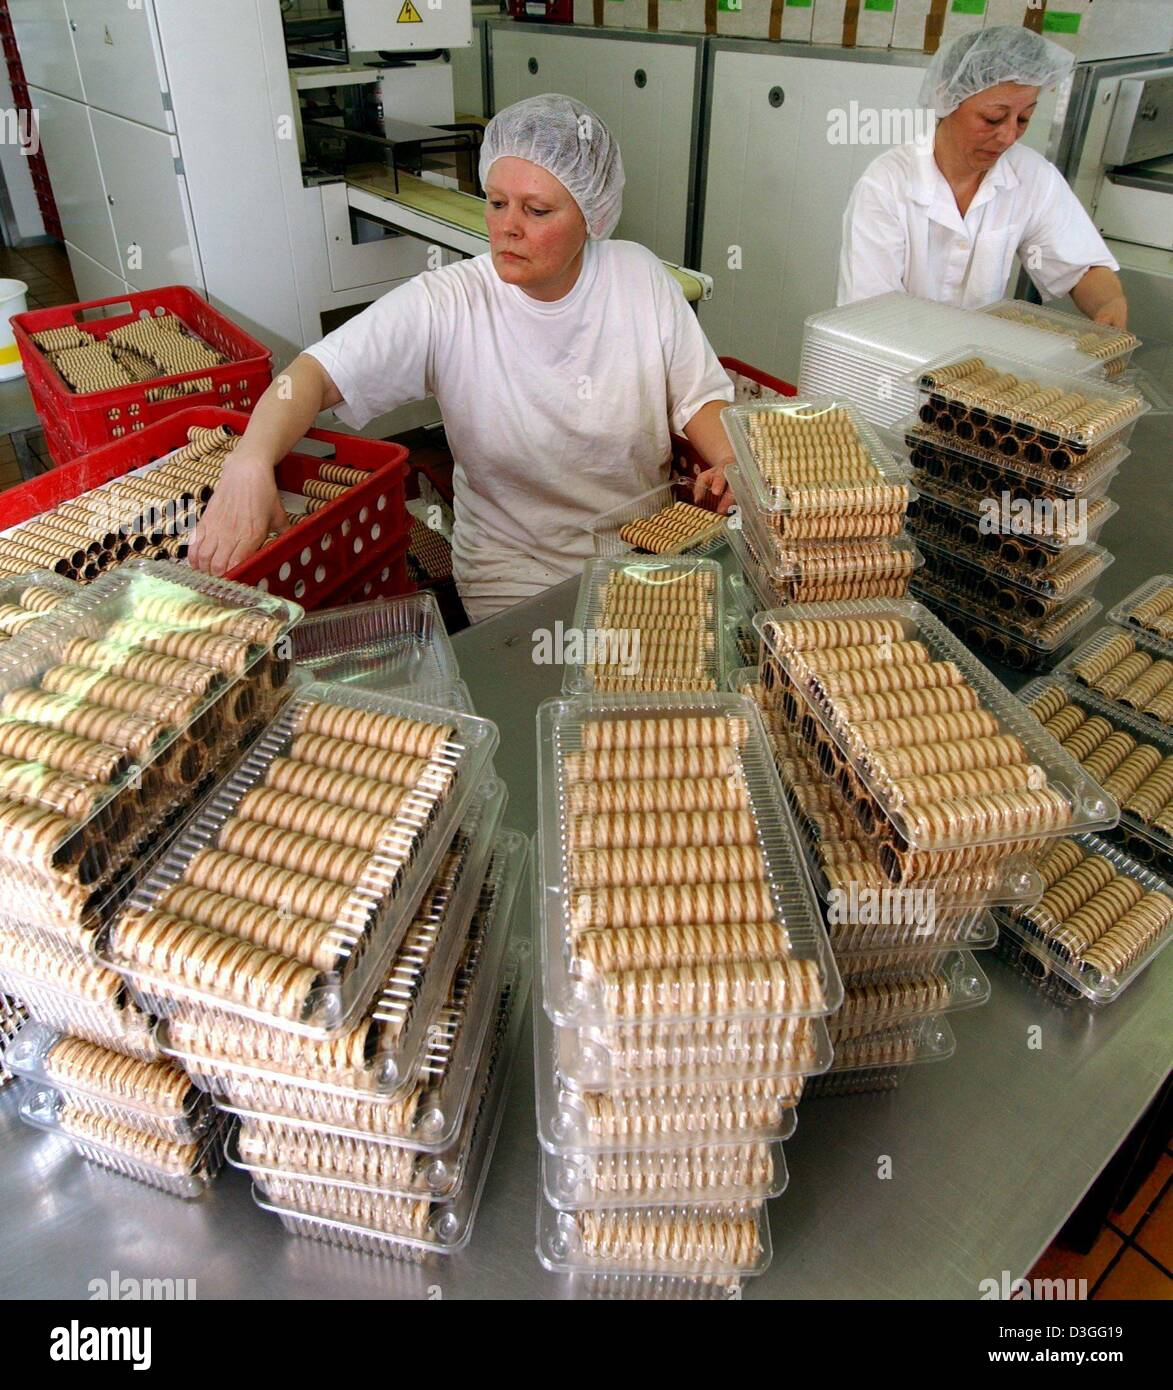 (dpa) - Employees Hedvika Smakelova and Alena Turazova work in the sweet rolls production at the bakery plant Japek - Stock Image